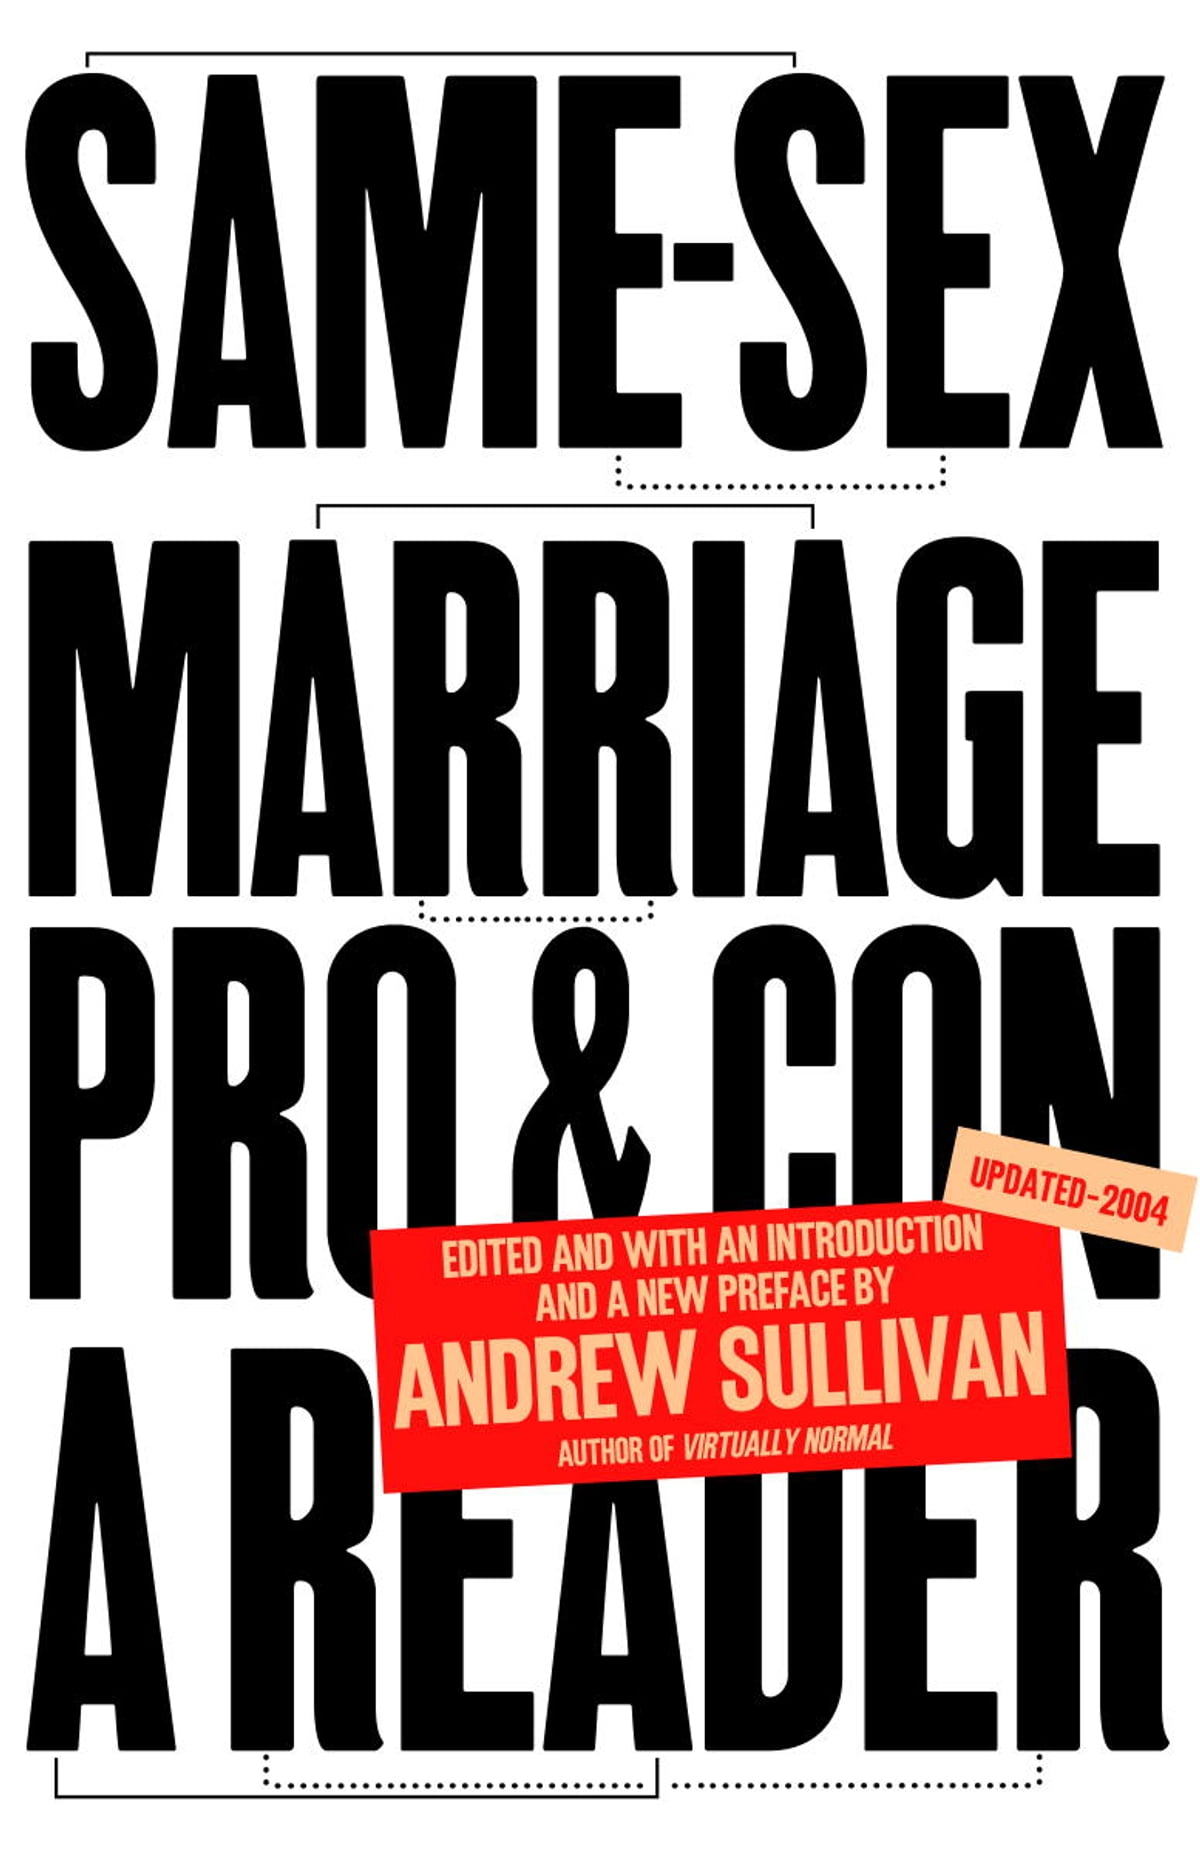 Andrew sullivan on gay marriage